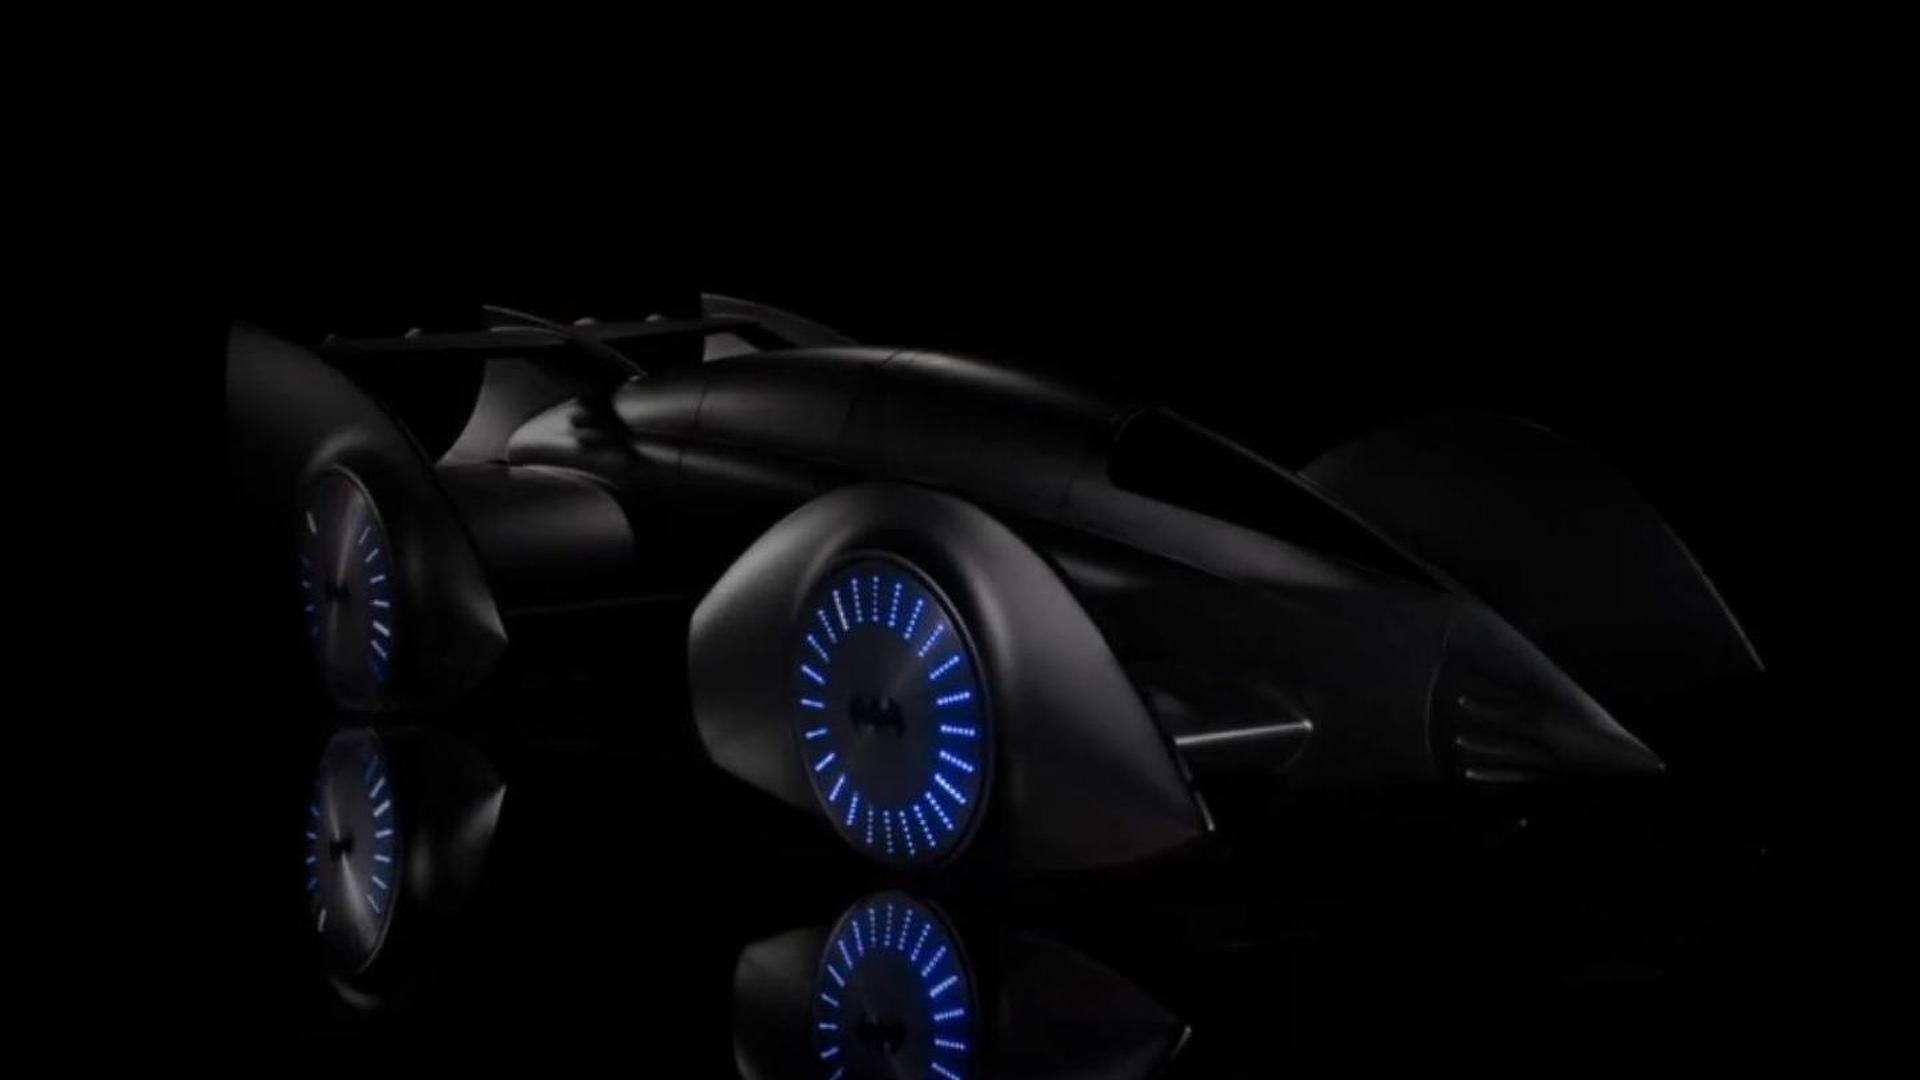 Gordon Murray envisions the Batmobile [video]